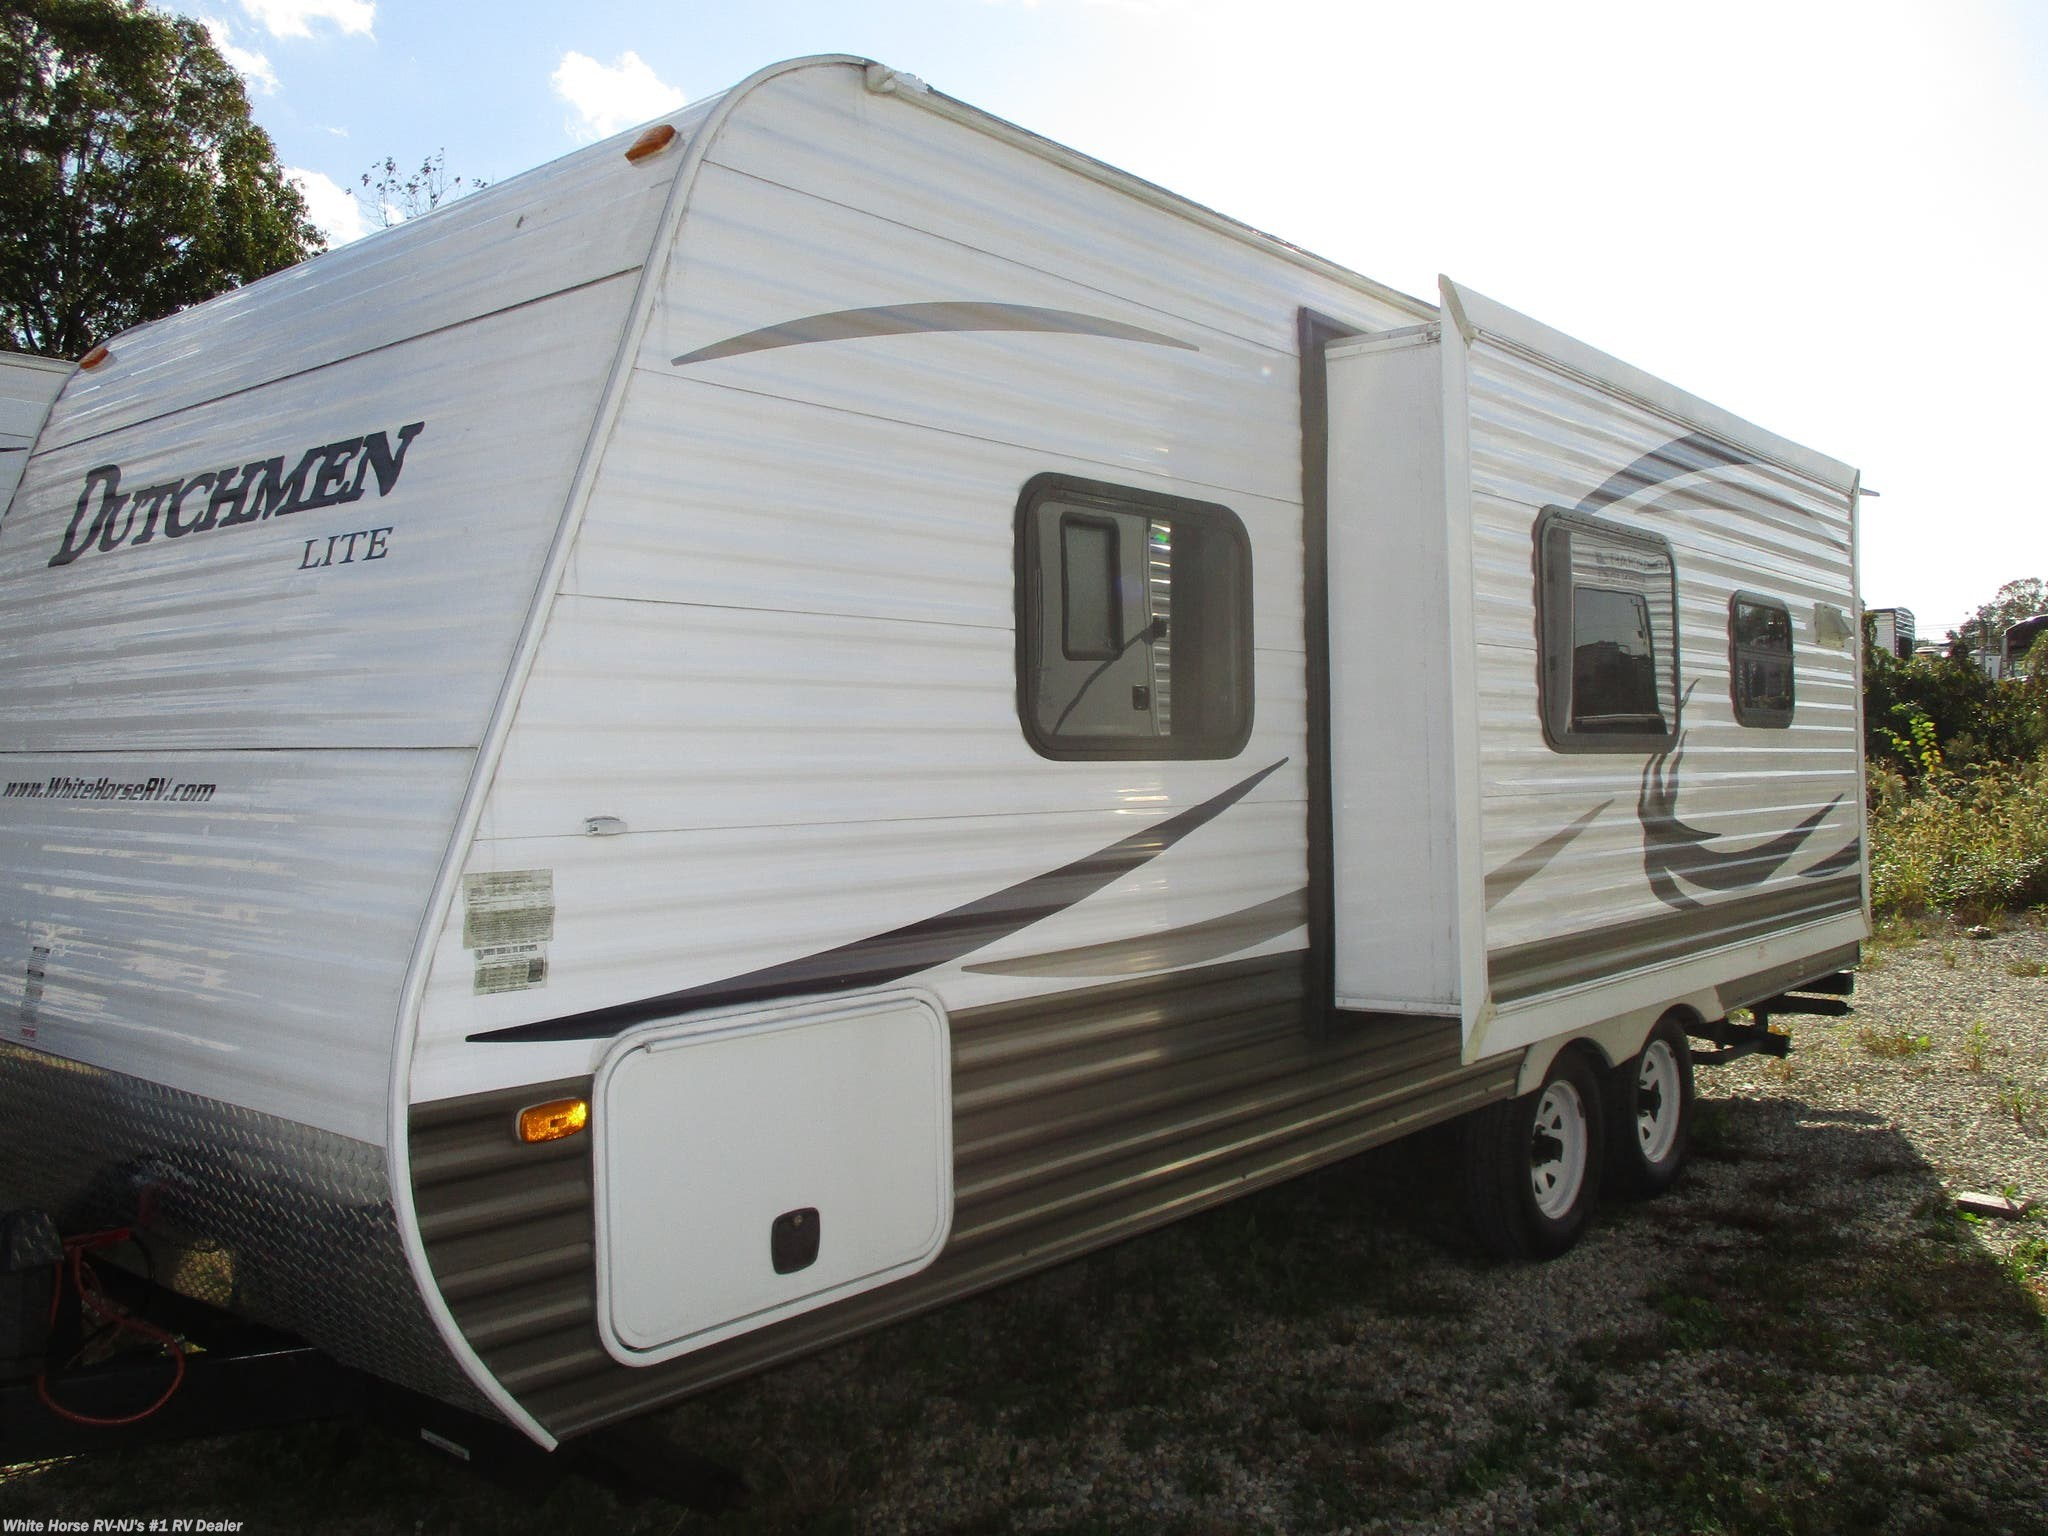 rv slide 2004 impala exhaust system diagram 2011 dutchmen lite 257rbgs out for sale in williamstown nj previous